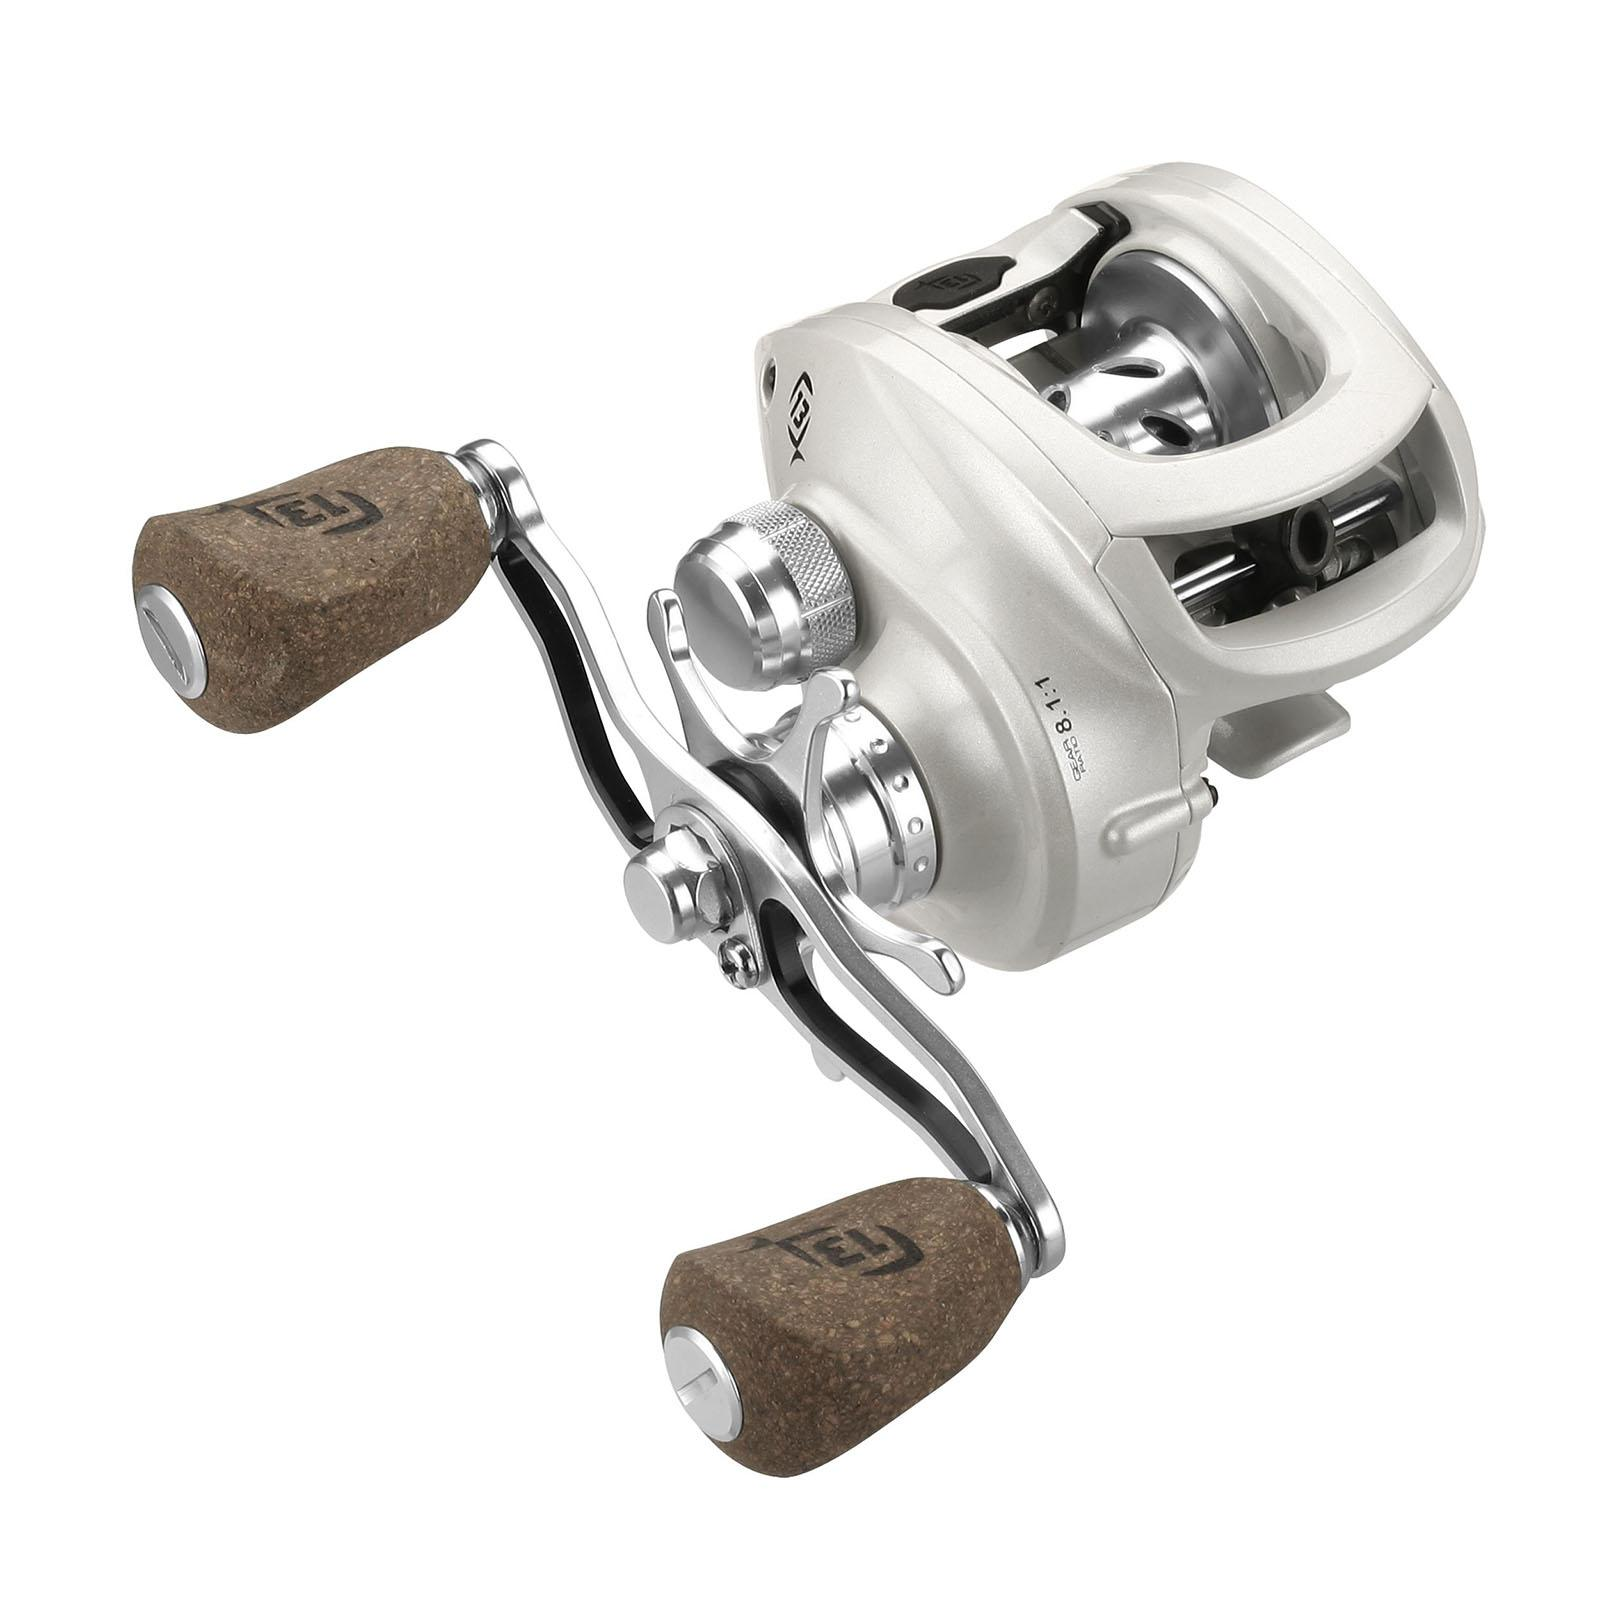 13 Fishing Concept C Low-Profile Casting Reel Model C6.6-LH